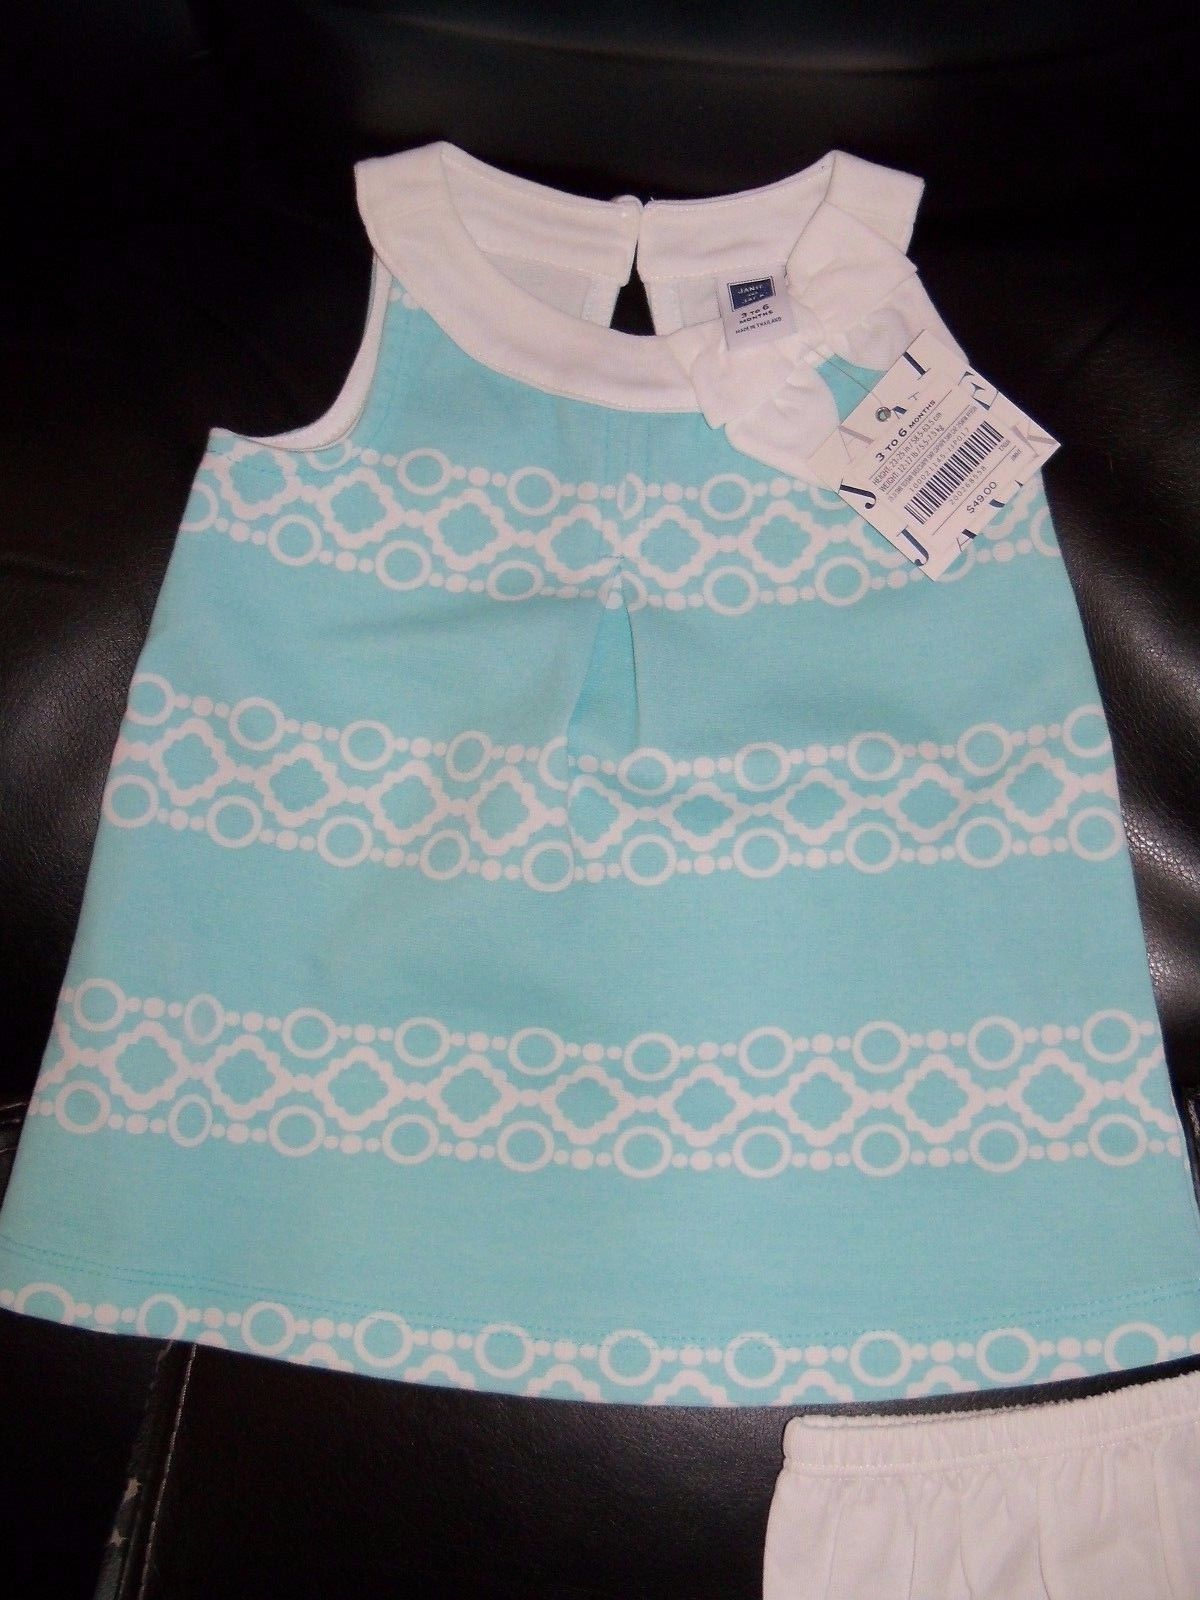 Janie and Jack SOUTH BEACH BEAUTY Pink Lime Print Top NWT 6-12 12-18 Baby Girl